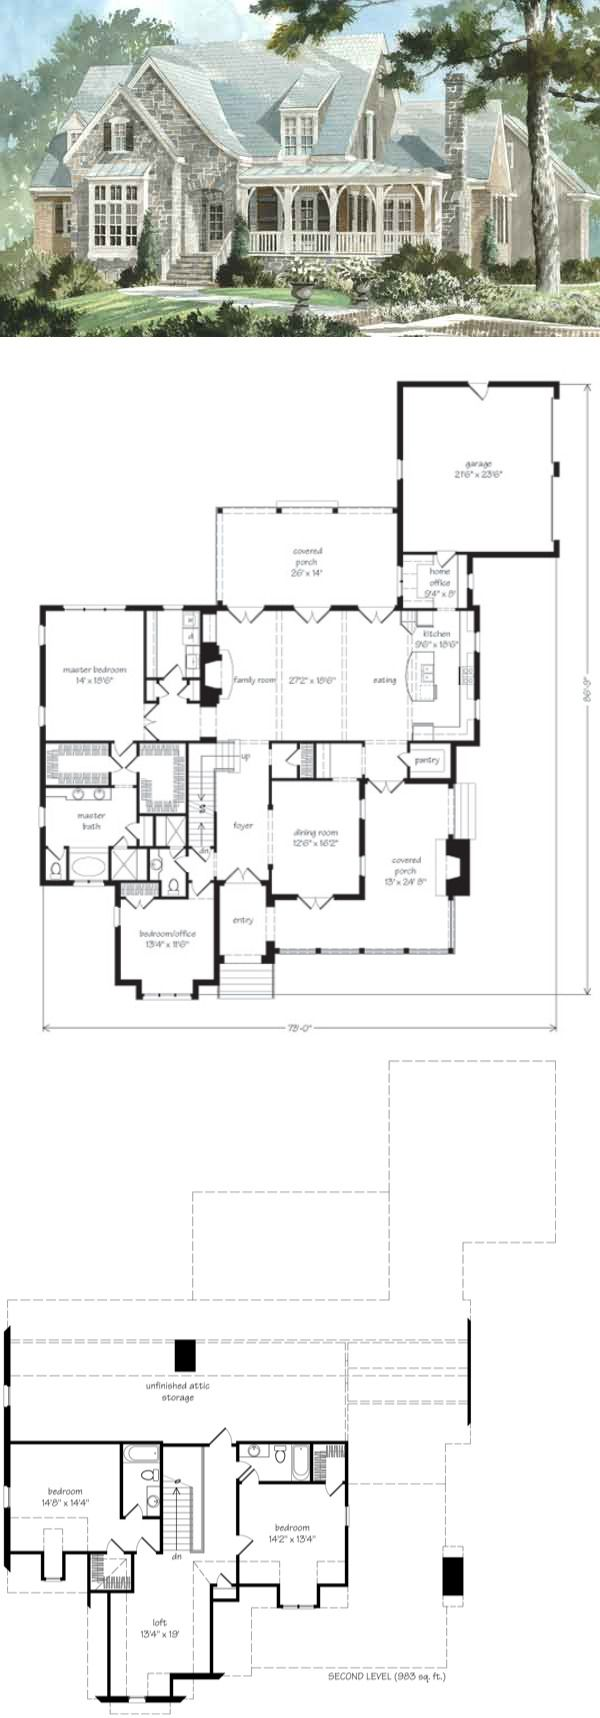 Farmhouse Plans Southern Living best 25+ southern living house plans ideas on pinterest | southern